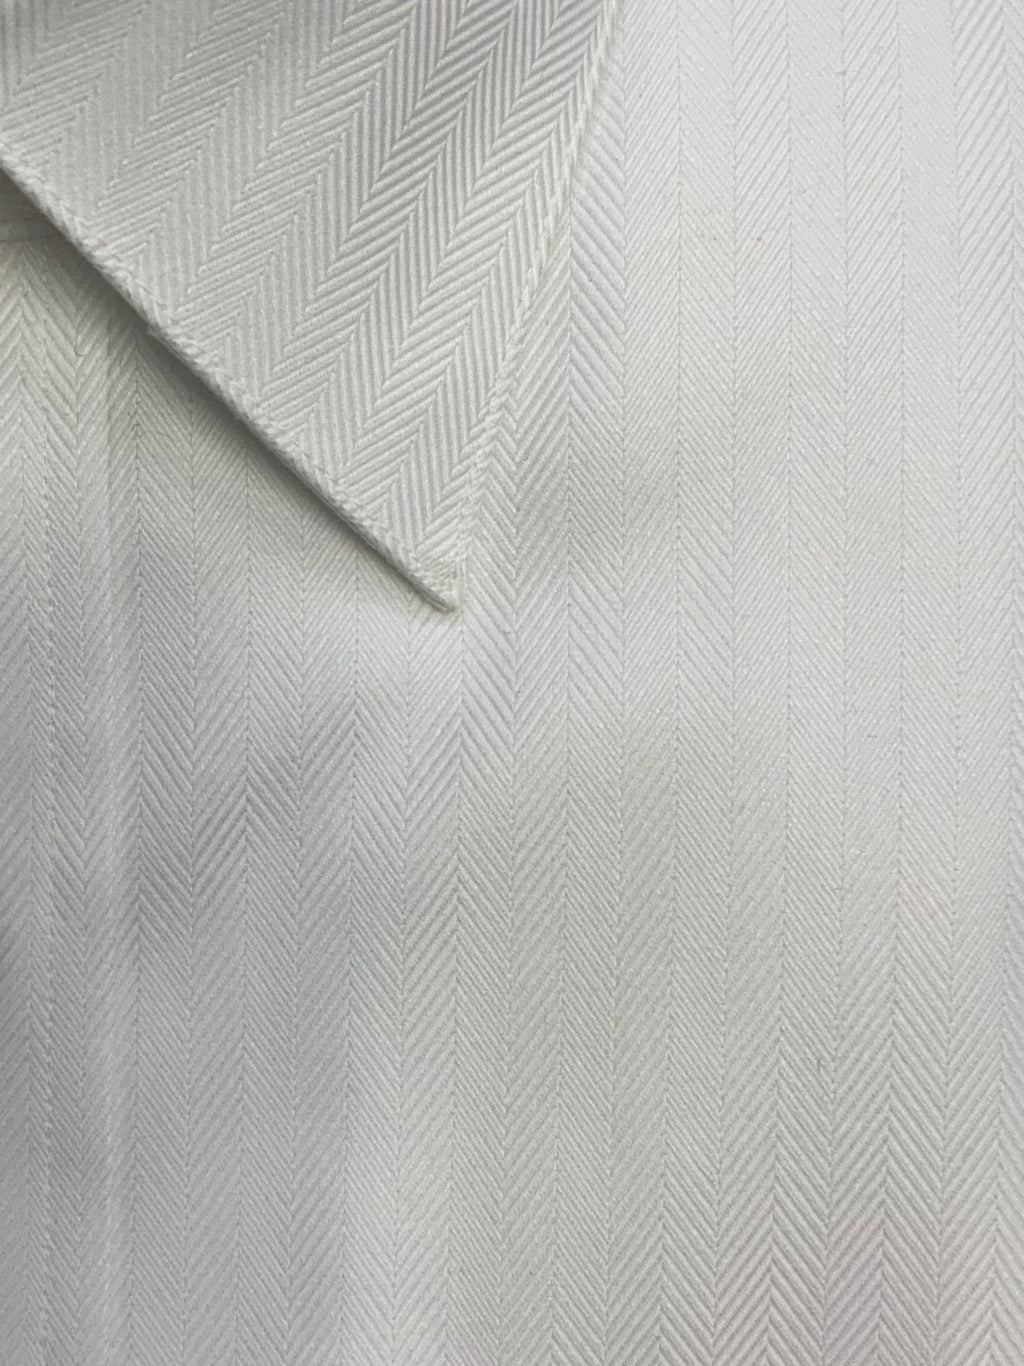 Giovanni's Herringbone Modified Spread Dress Shirt - White-01